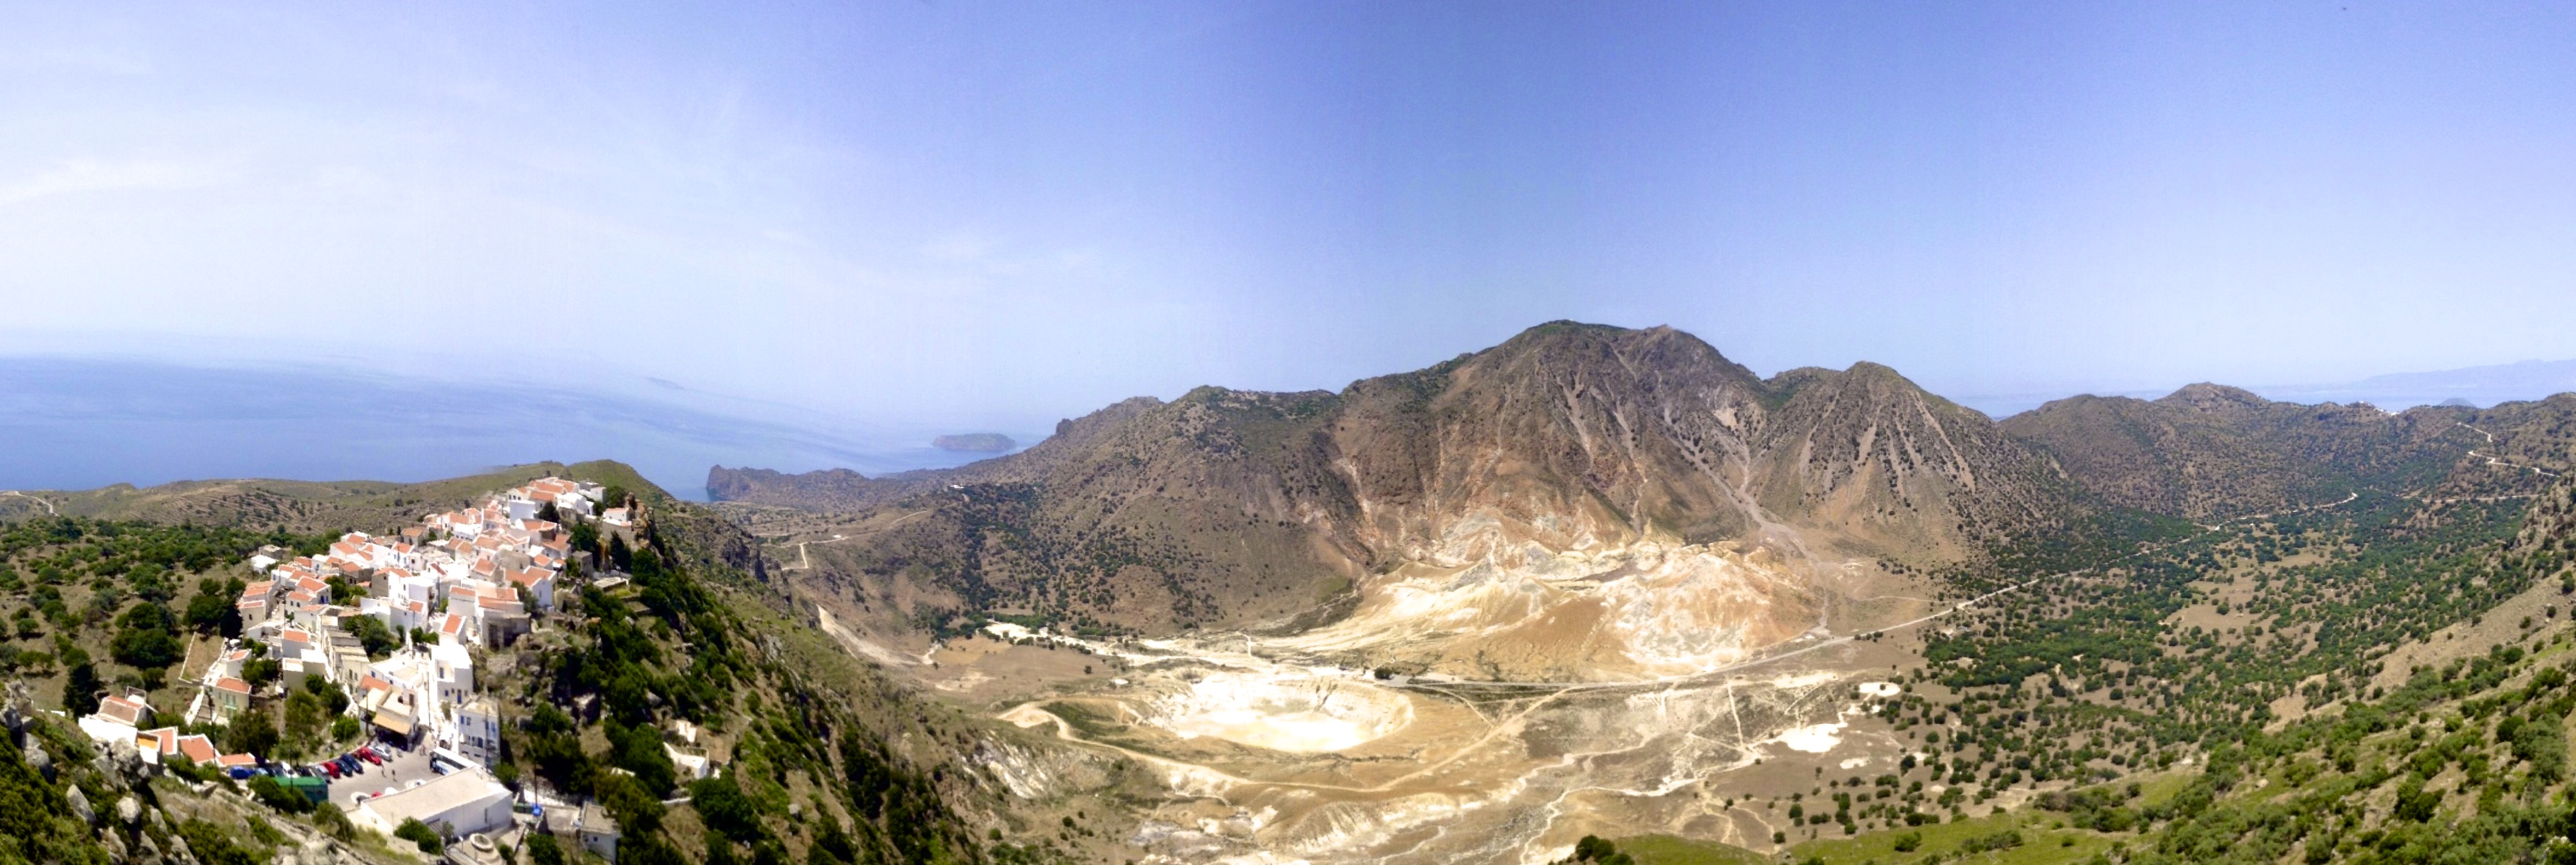 Village of Nikia, volcano crater